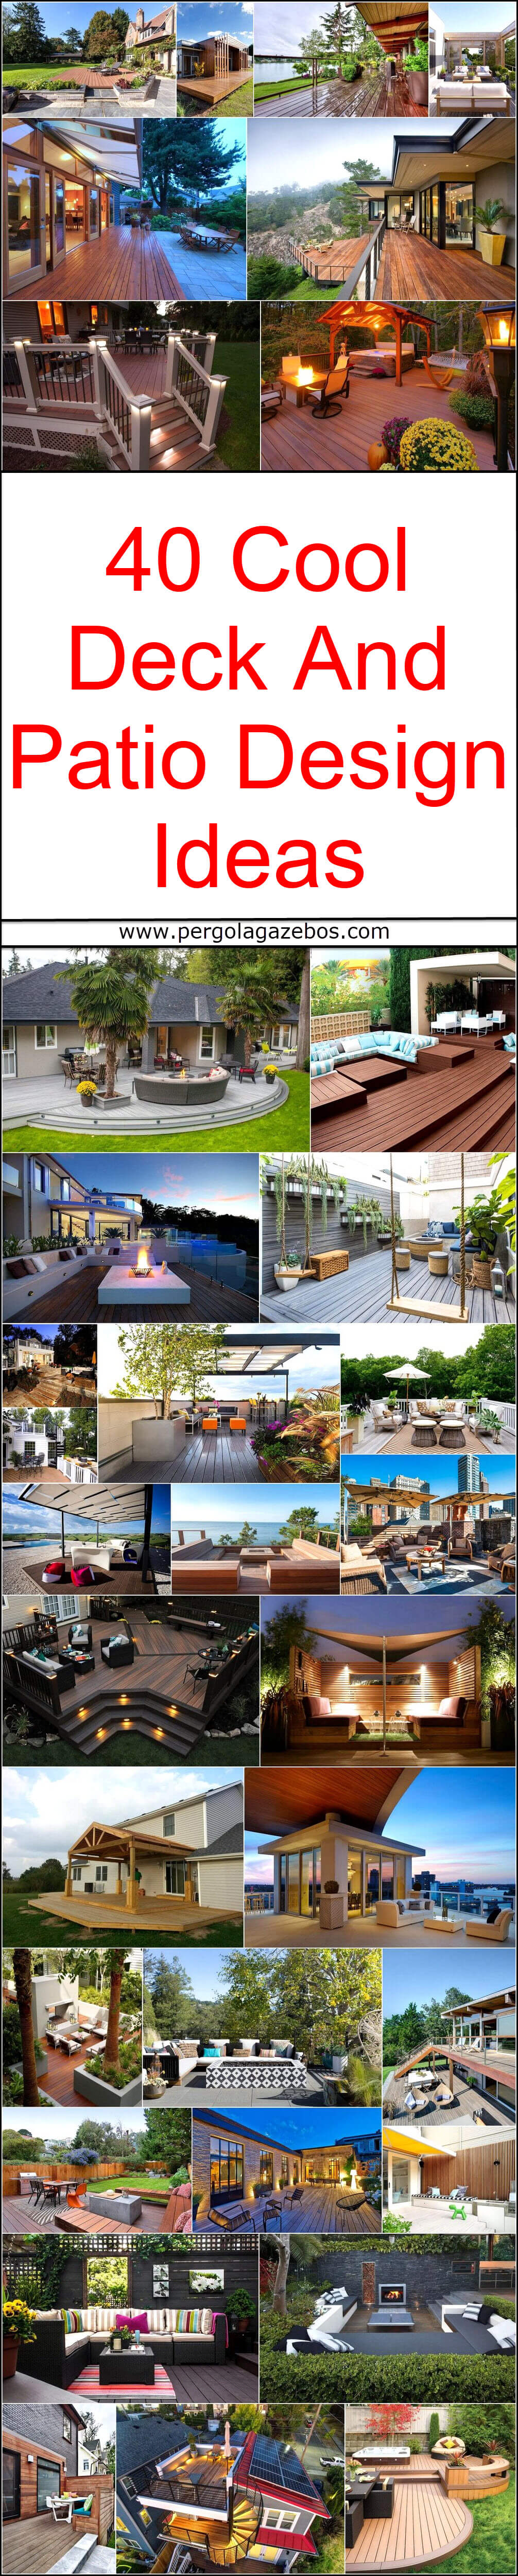 40 Cool Deck And Patio Design Ideas